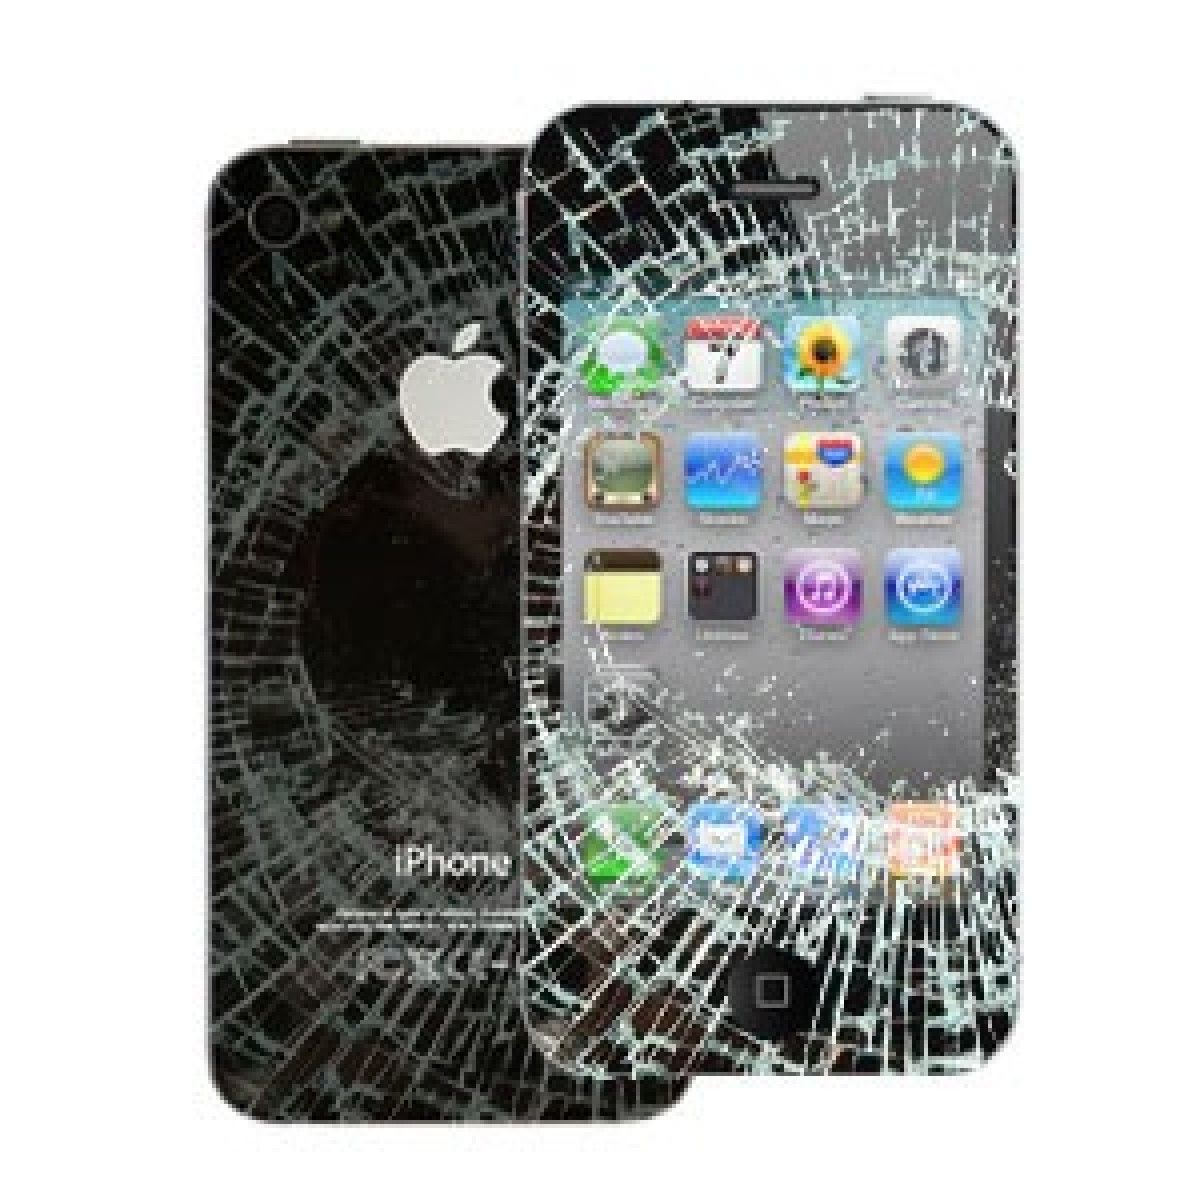 TechcitiQuick and reliable mobile phone screen repairs in